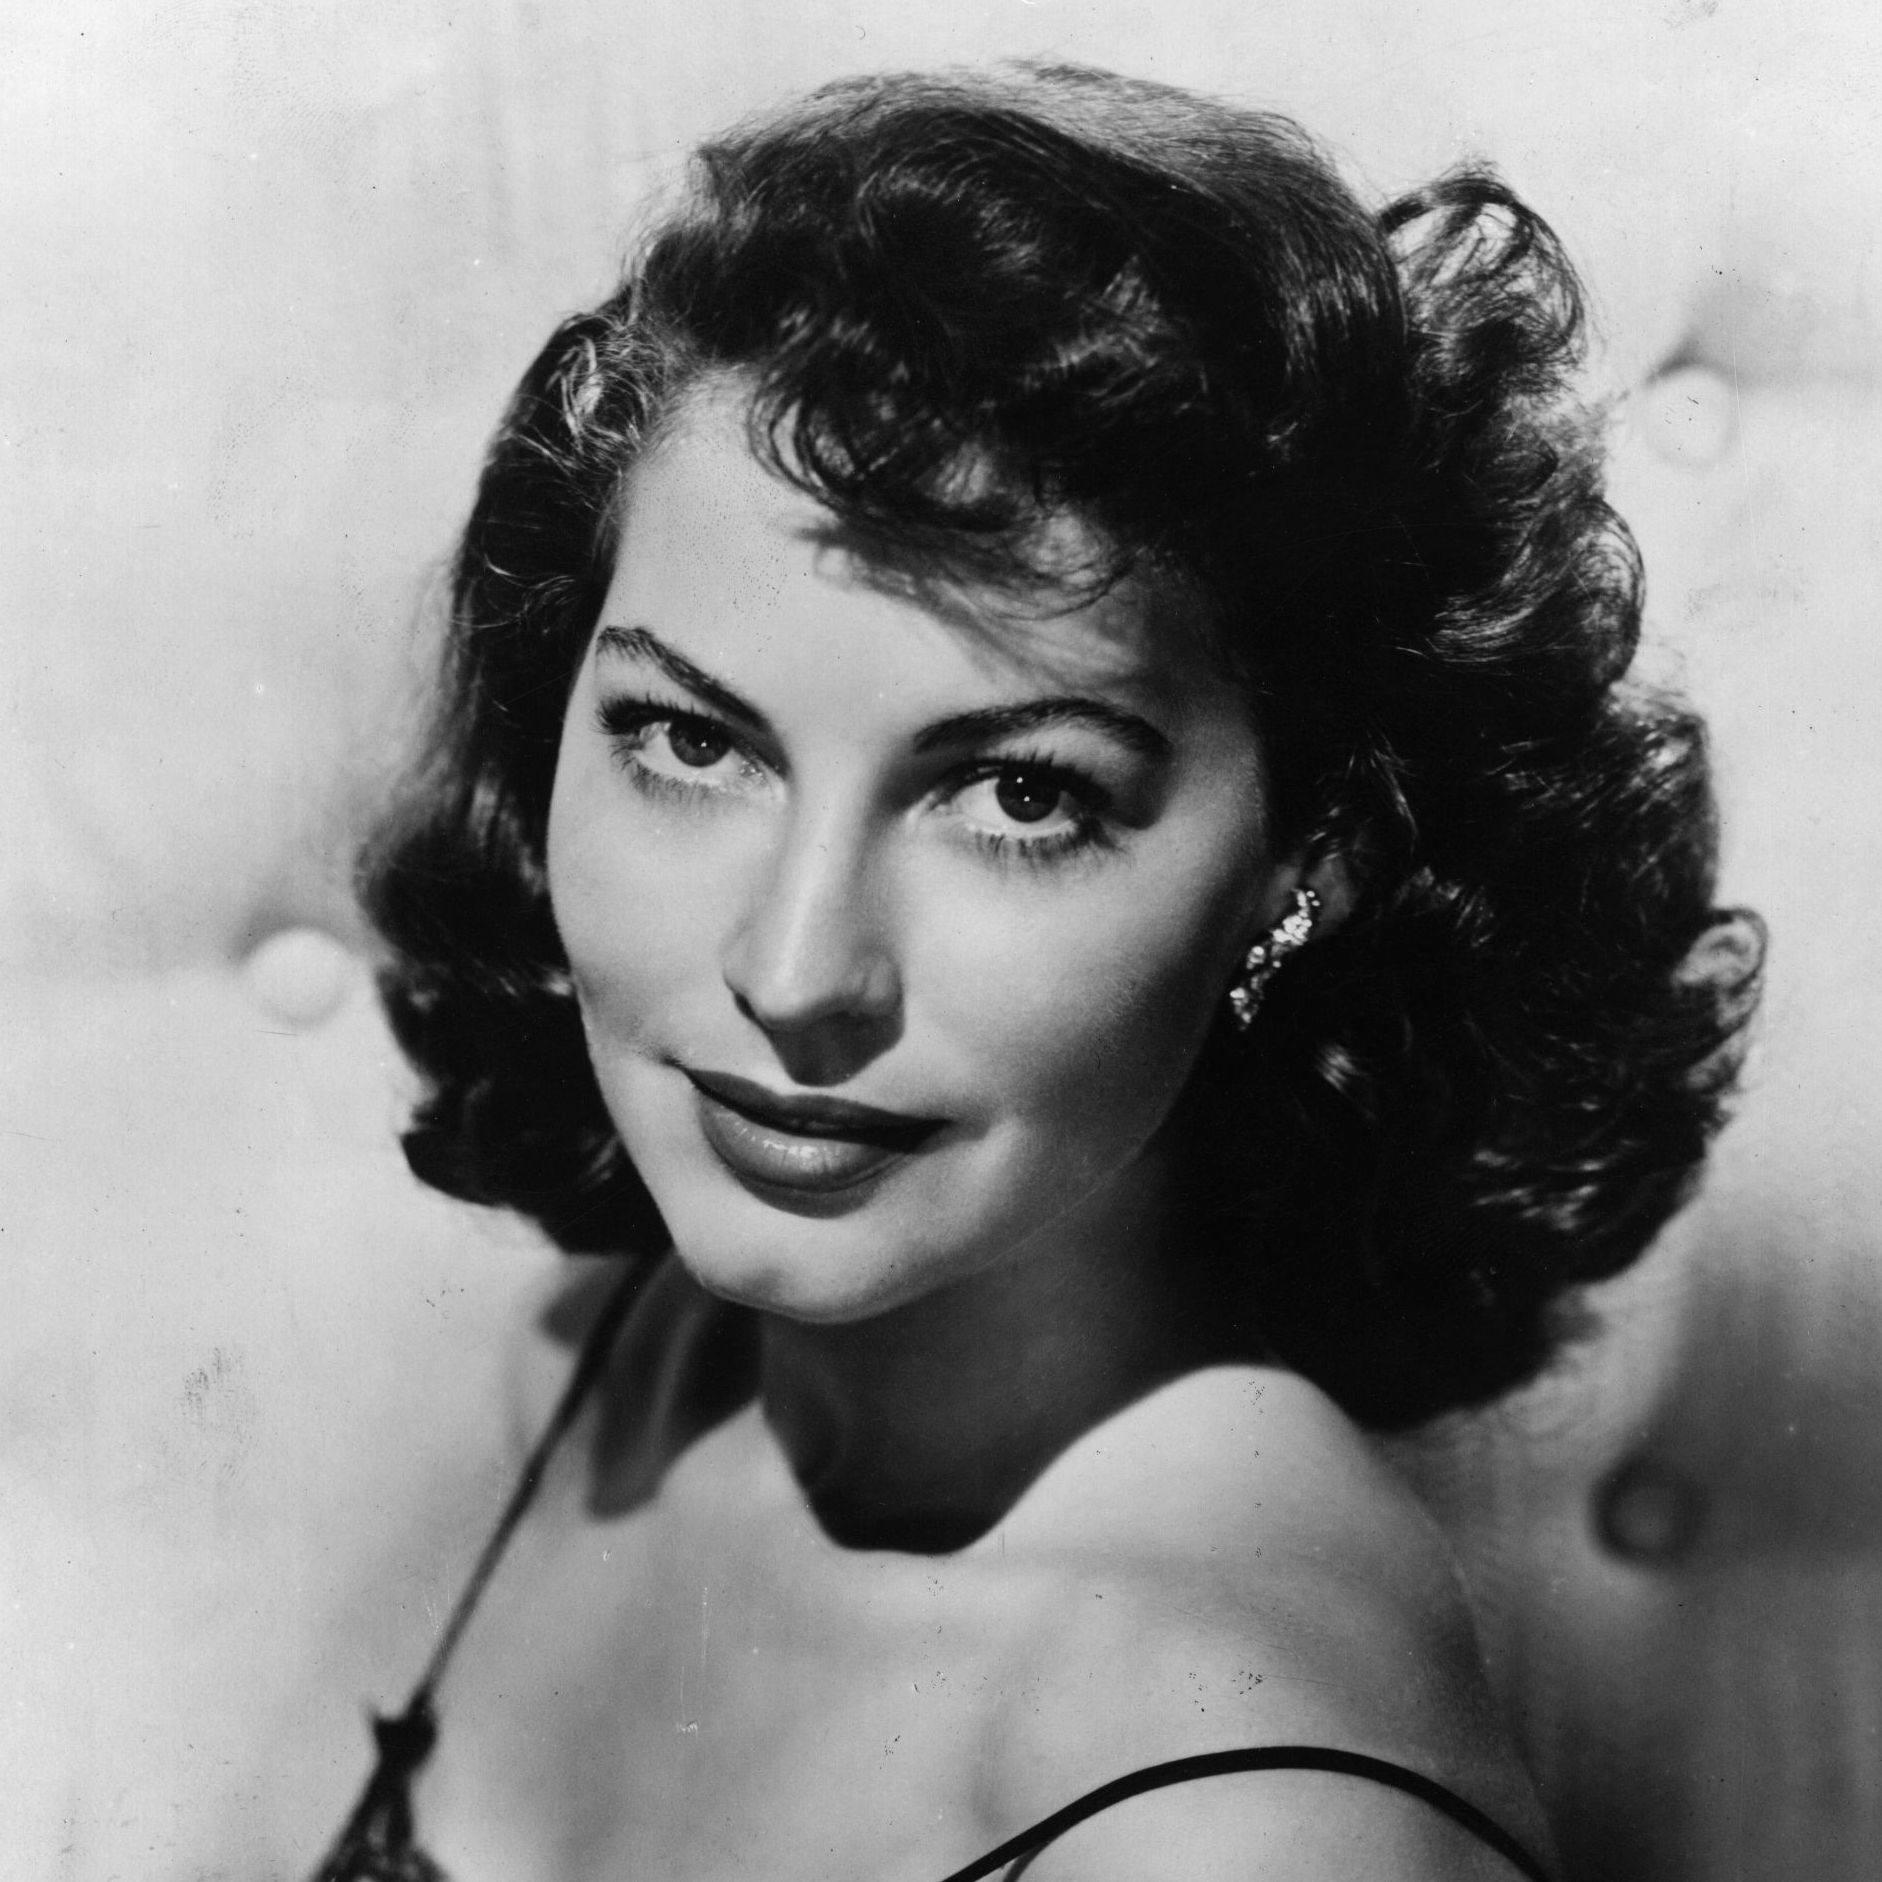 Ava Gardner's beauty was legendary and her love life was tumultuous. She starred in dozens of movies before her career was cut short by a debilitating stroke, and she died in 1990.